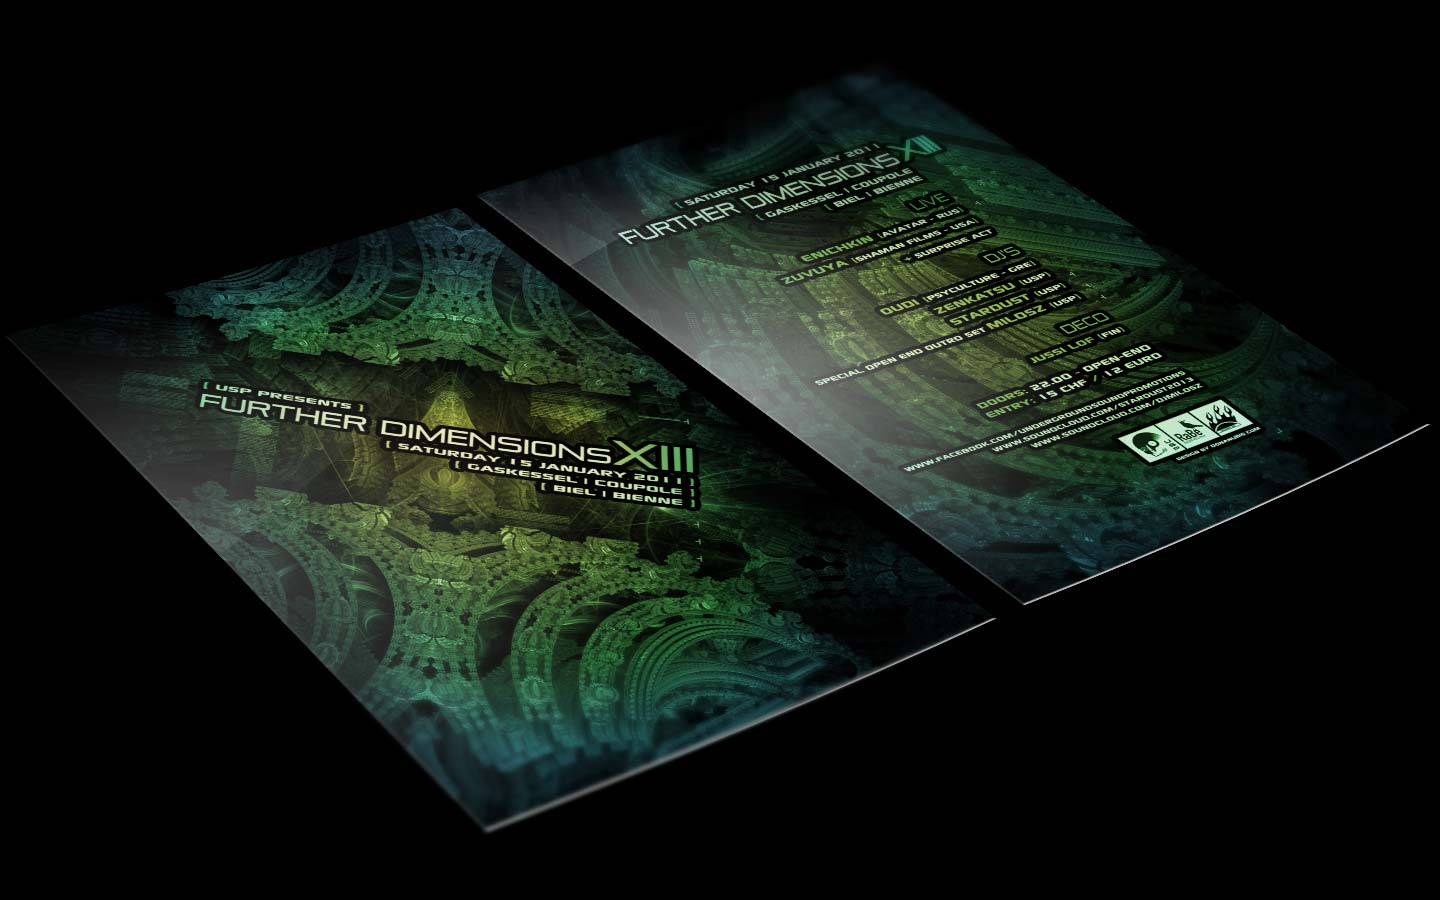 USP - Further Dimensions XIII - Laurent Lemoigne - Donanubis - Don Anubis - Graphic Design - Underground Sound Promotion - Coupole - Bienne - Art - Music - Electronic - Party - Event - Flyer - Poster Alternative - Underground - Geneva - Switzerland - Dark Psytrance - Darkpsy - Trance - Fractal - 3d - Psychedelic - LSD - Hoffman - Enichkin / Avatar - Zuvuya / Shaman Films - Quidi / Psycultire - Milosz - Stardust - Zenkatsu